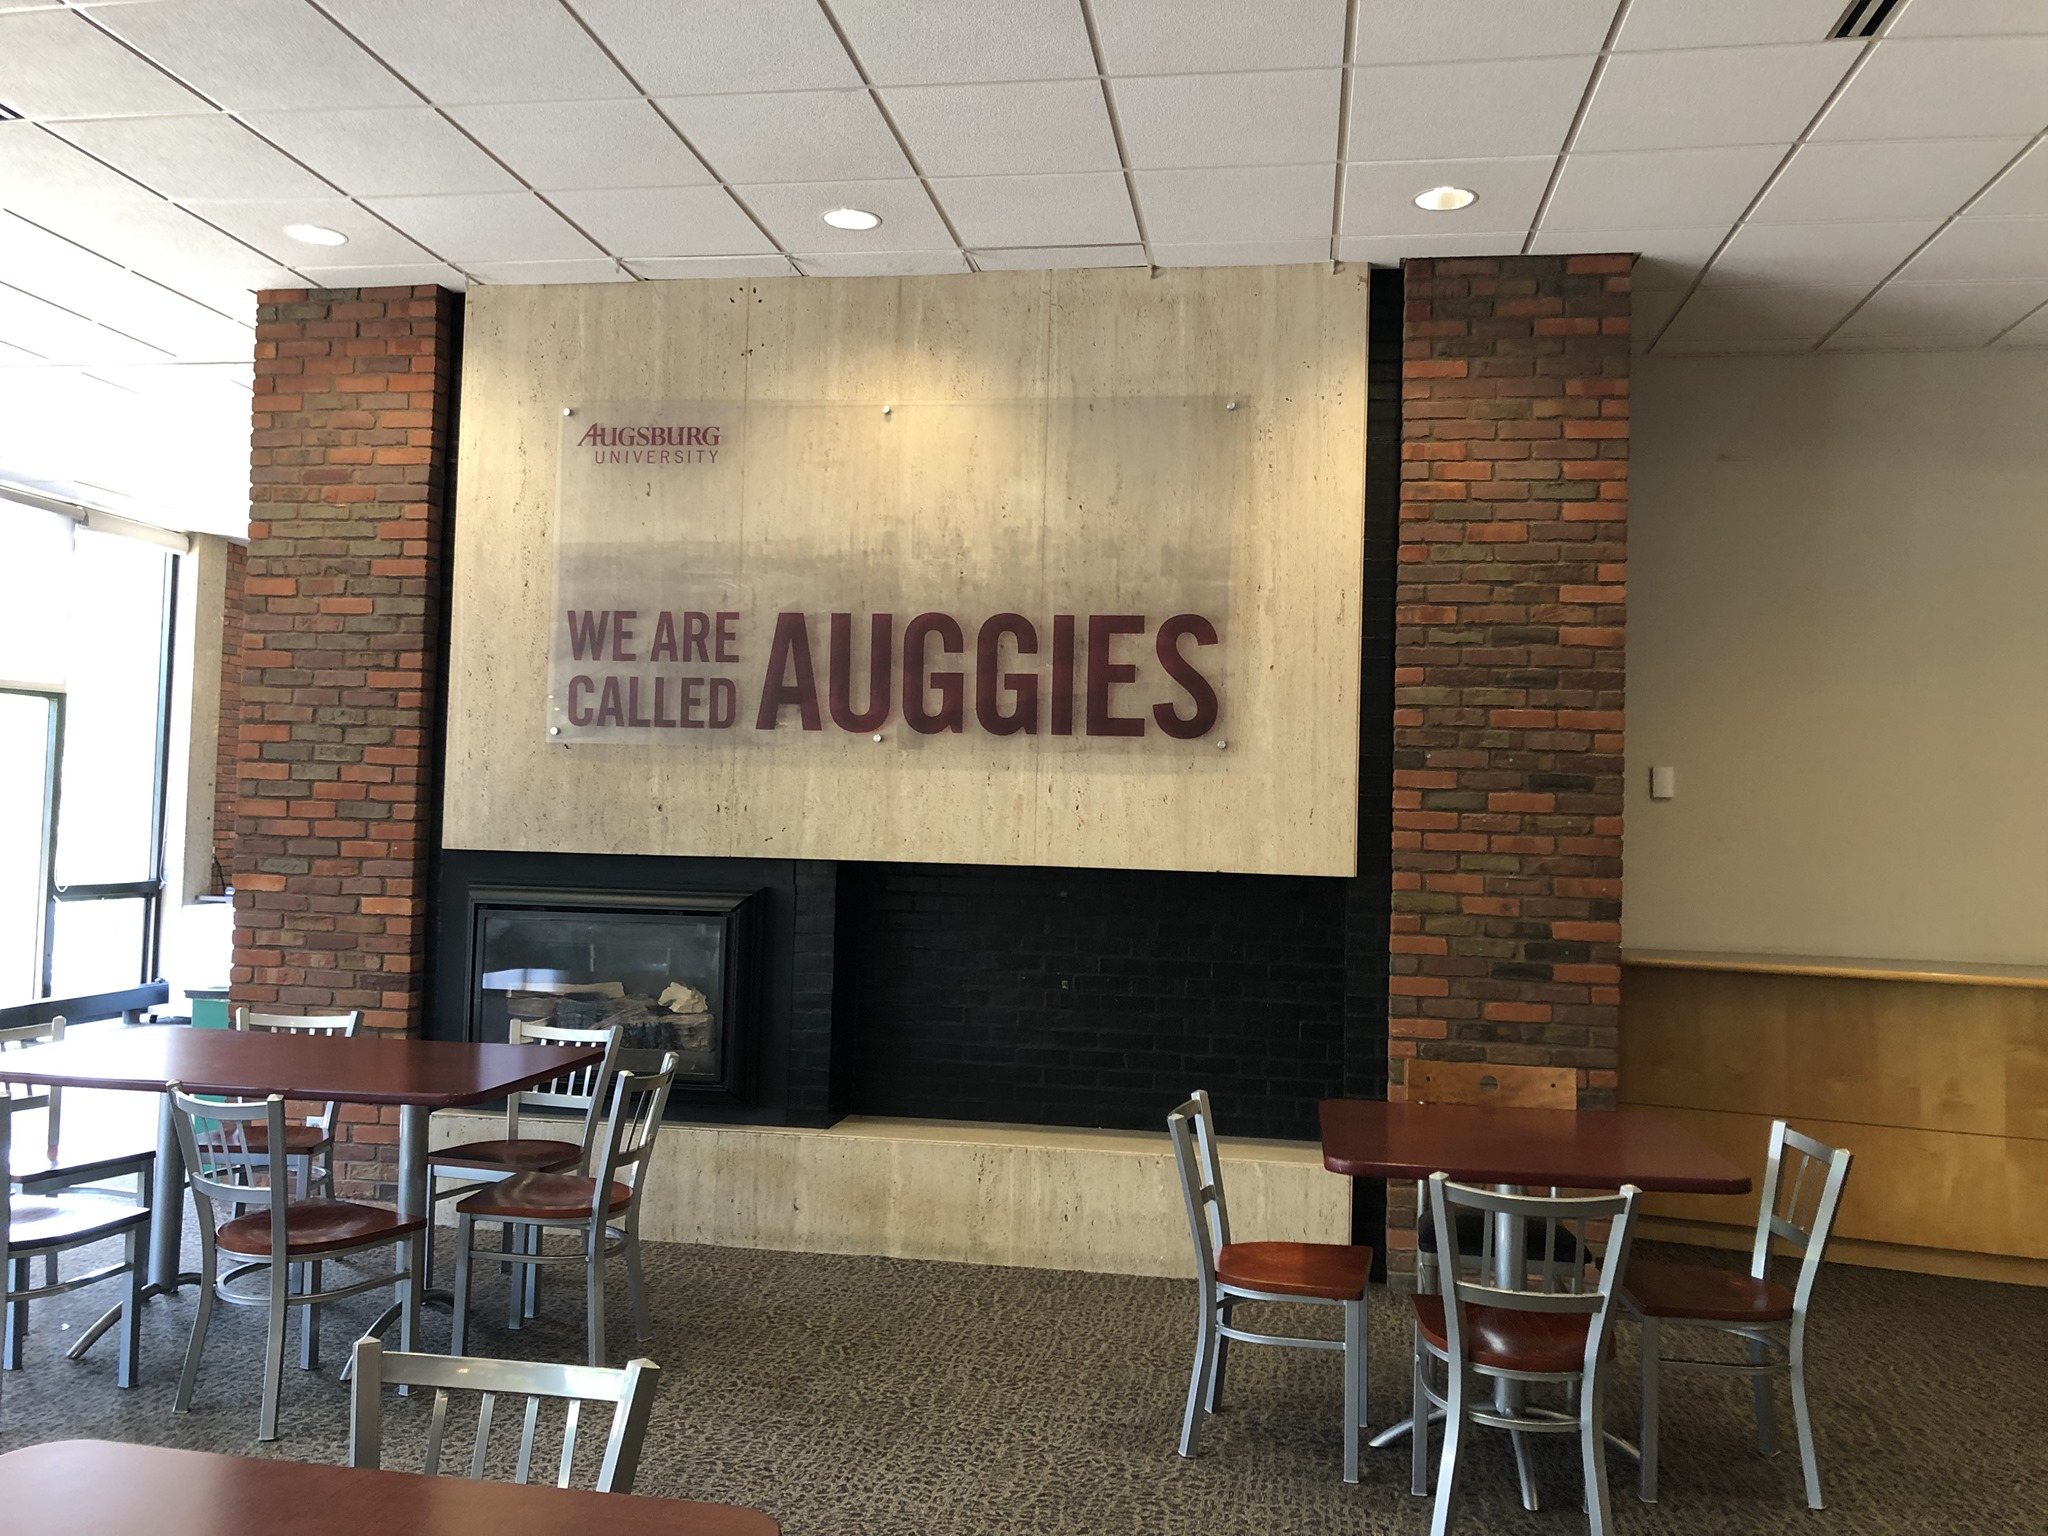 Refunds, Commencement and More: What We Learned From Augsburg's Town Hall